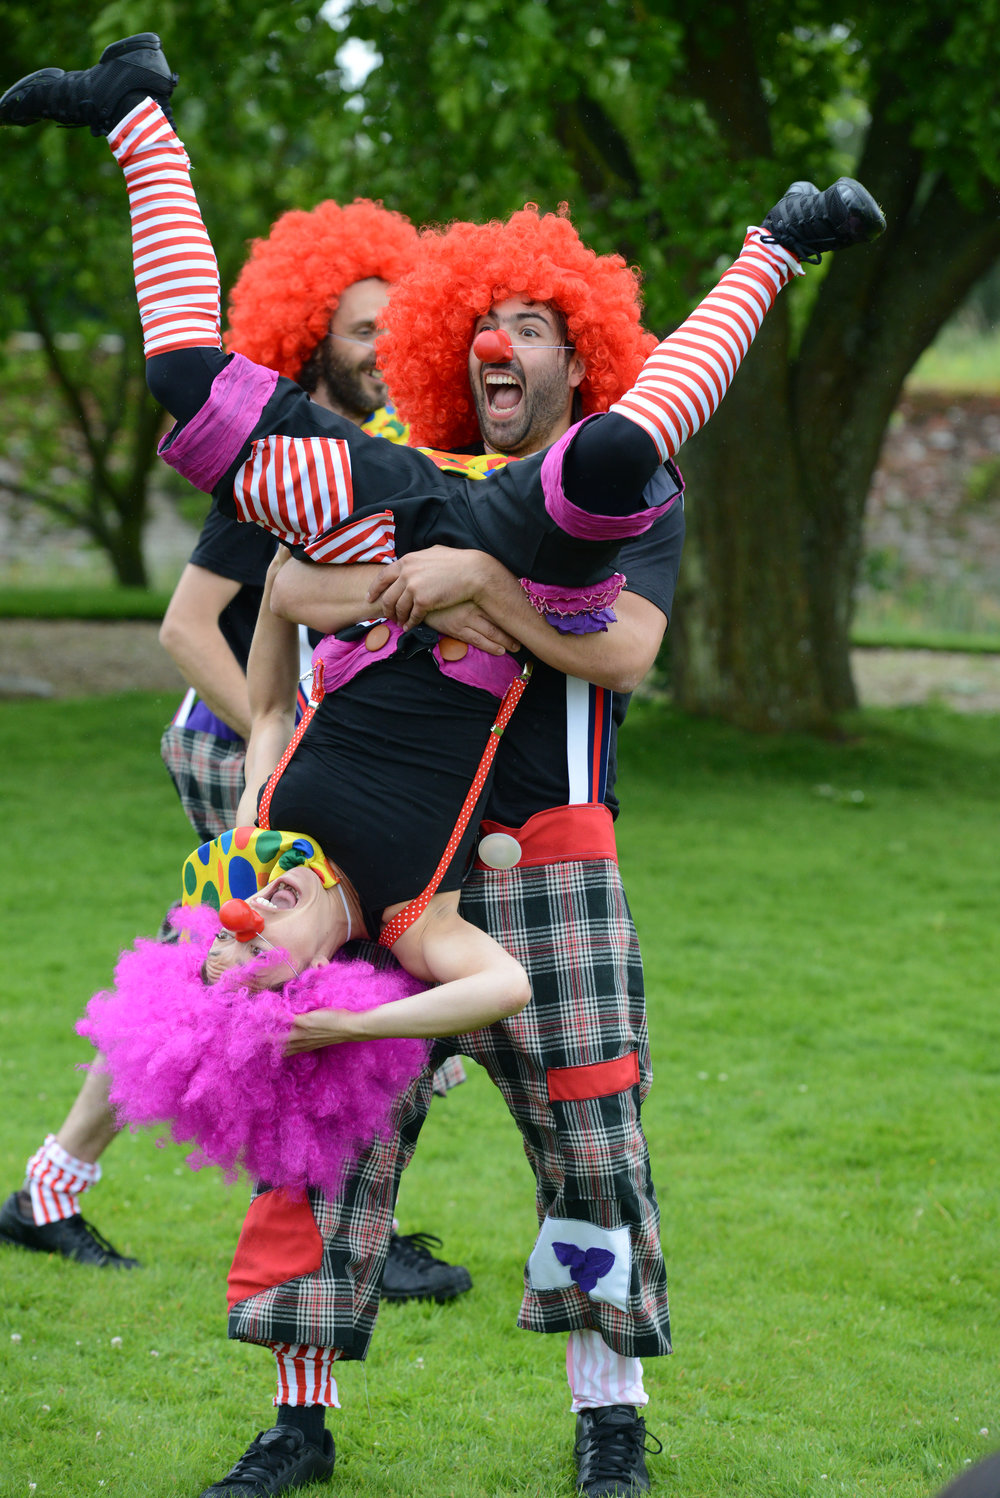 Walkabout and Street Theatre Performers - The Shapeshifting Circus